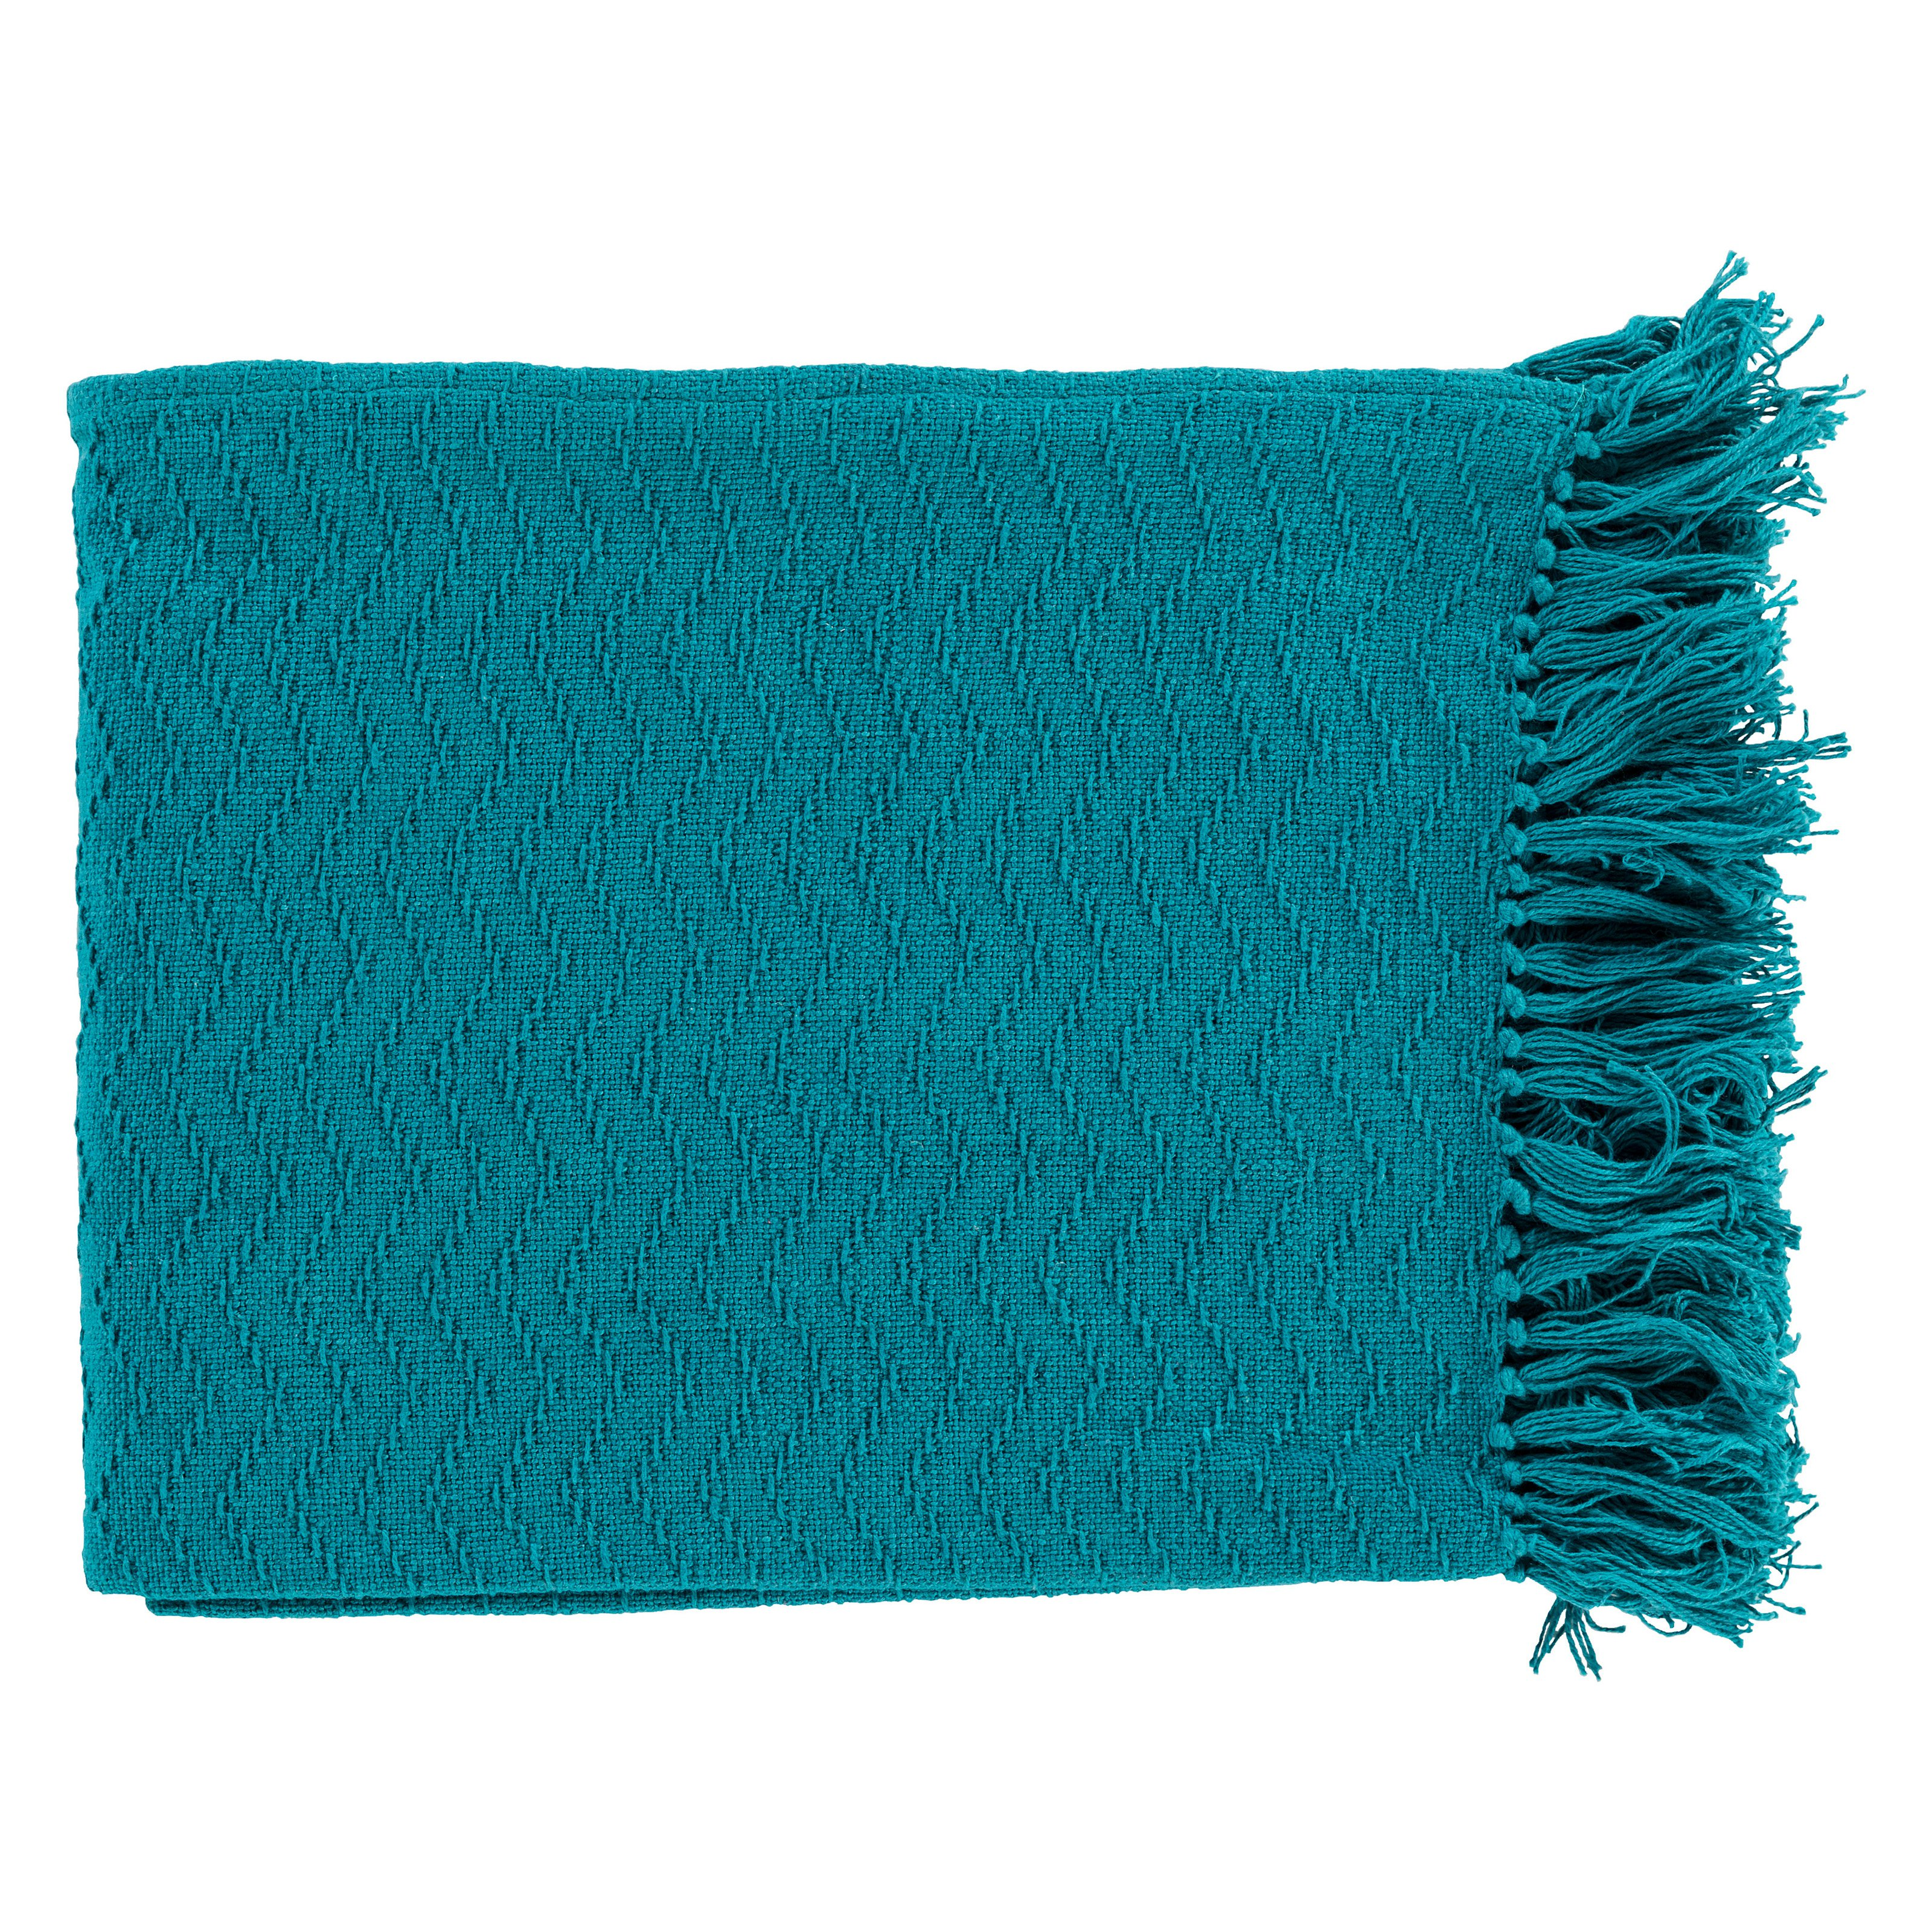 Surya Thelma Cotton Throw Blanket